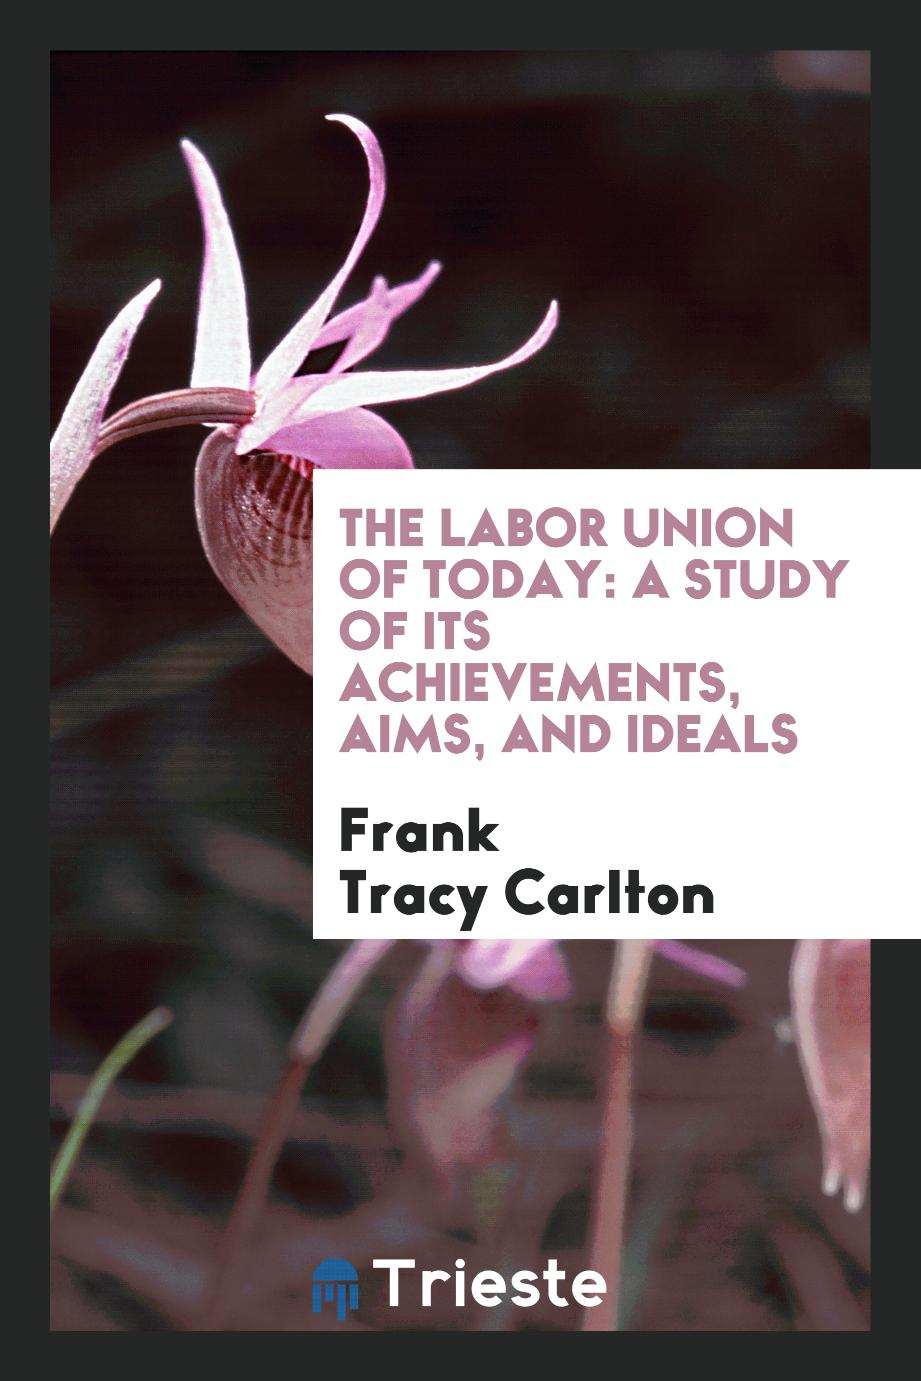 The Labor Union of Today: A Study of Its Achievements, Aims, and Ideals